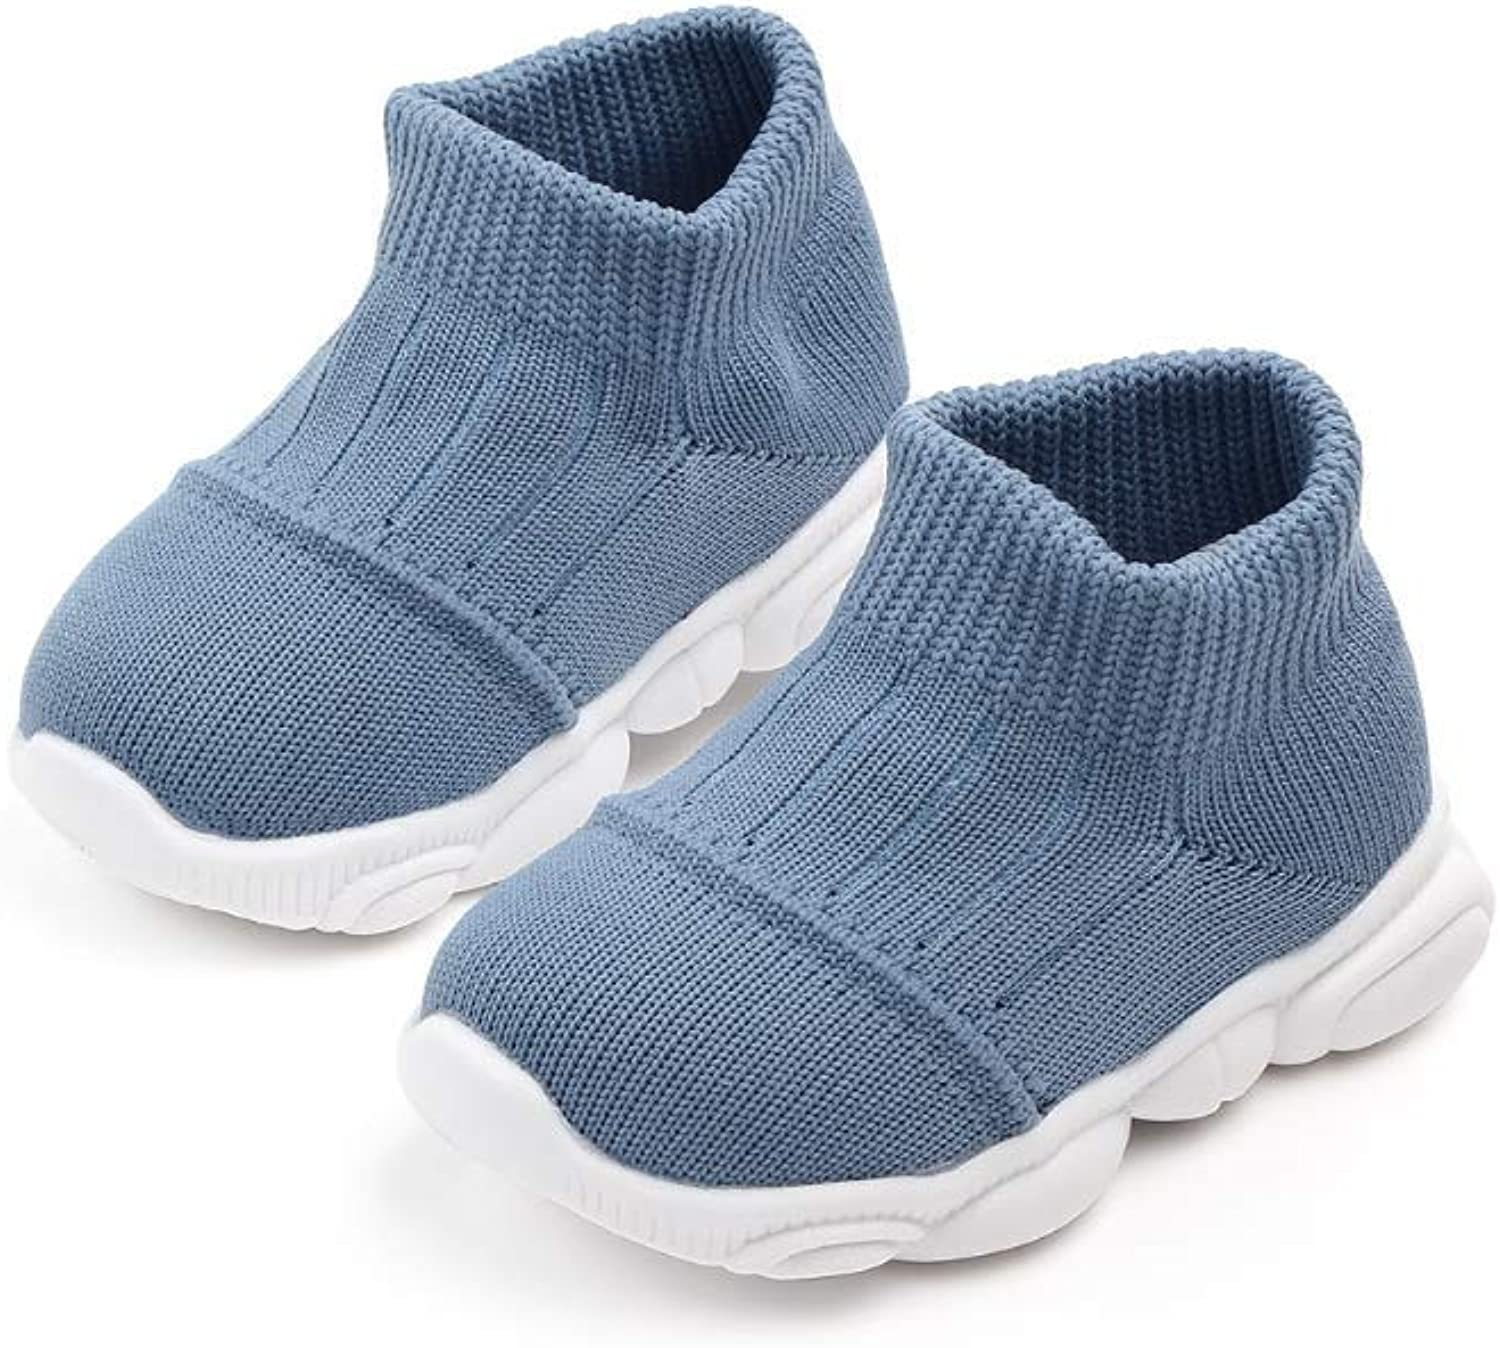 Hav Baby Shoes 3,6,9,12 Months Infant Toddler First Walking Shoes Sock Sneakers boy Girl Non Slip Shoes